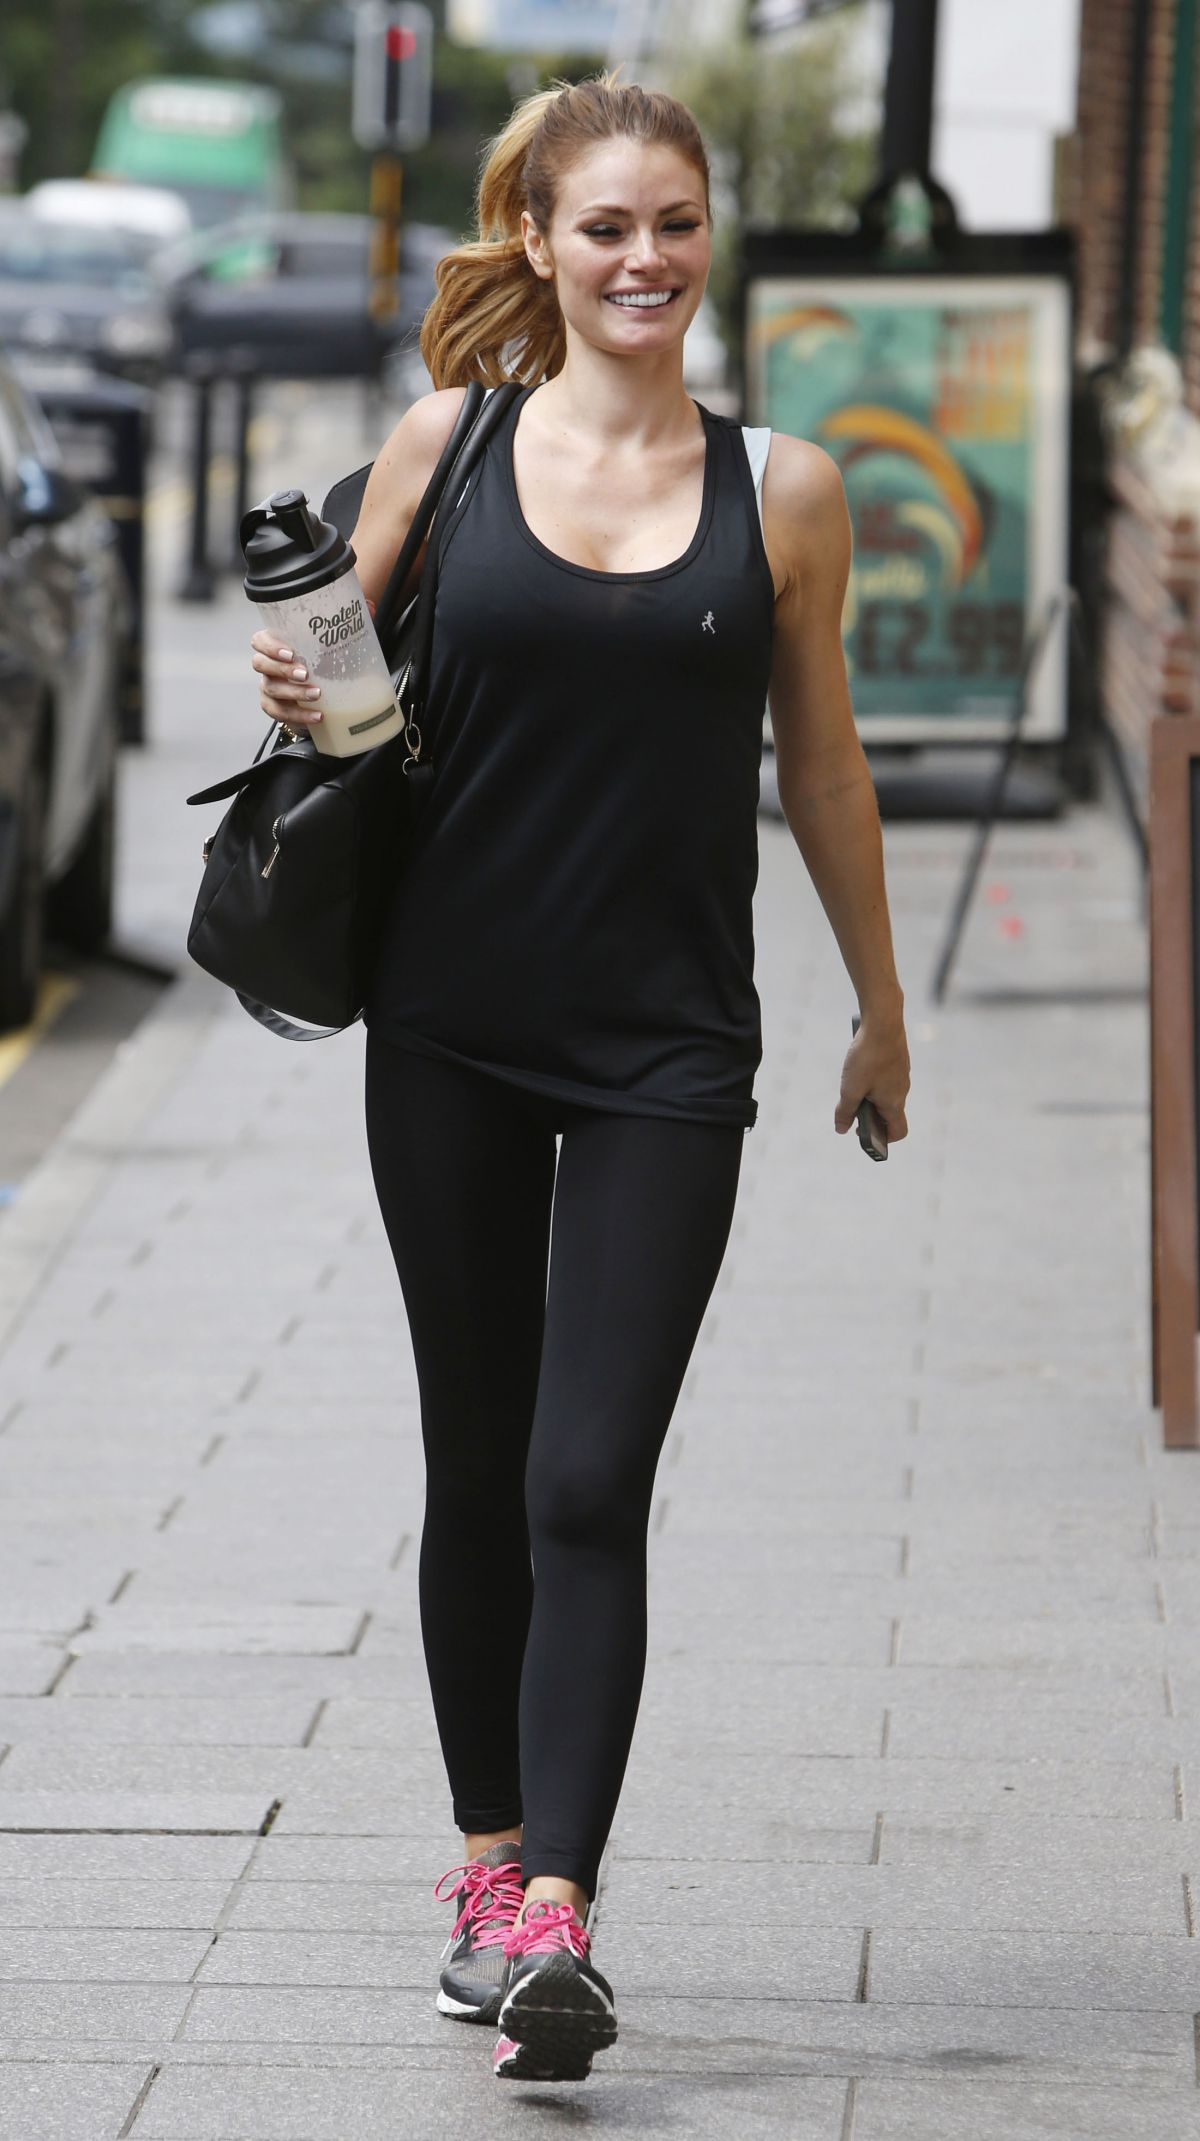 CHLOE SIMS Leaves a Gym in Essex